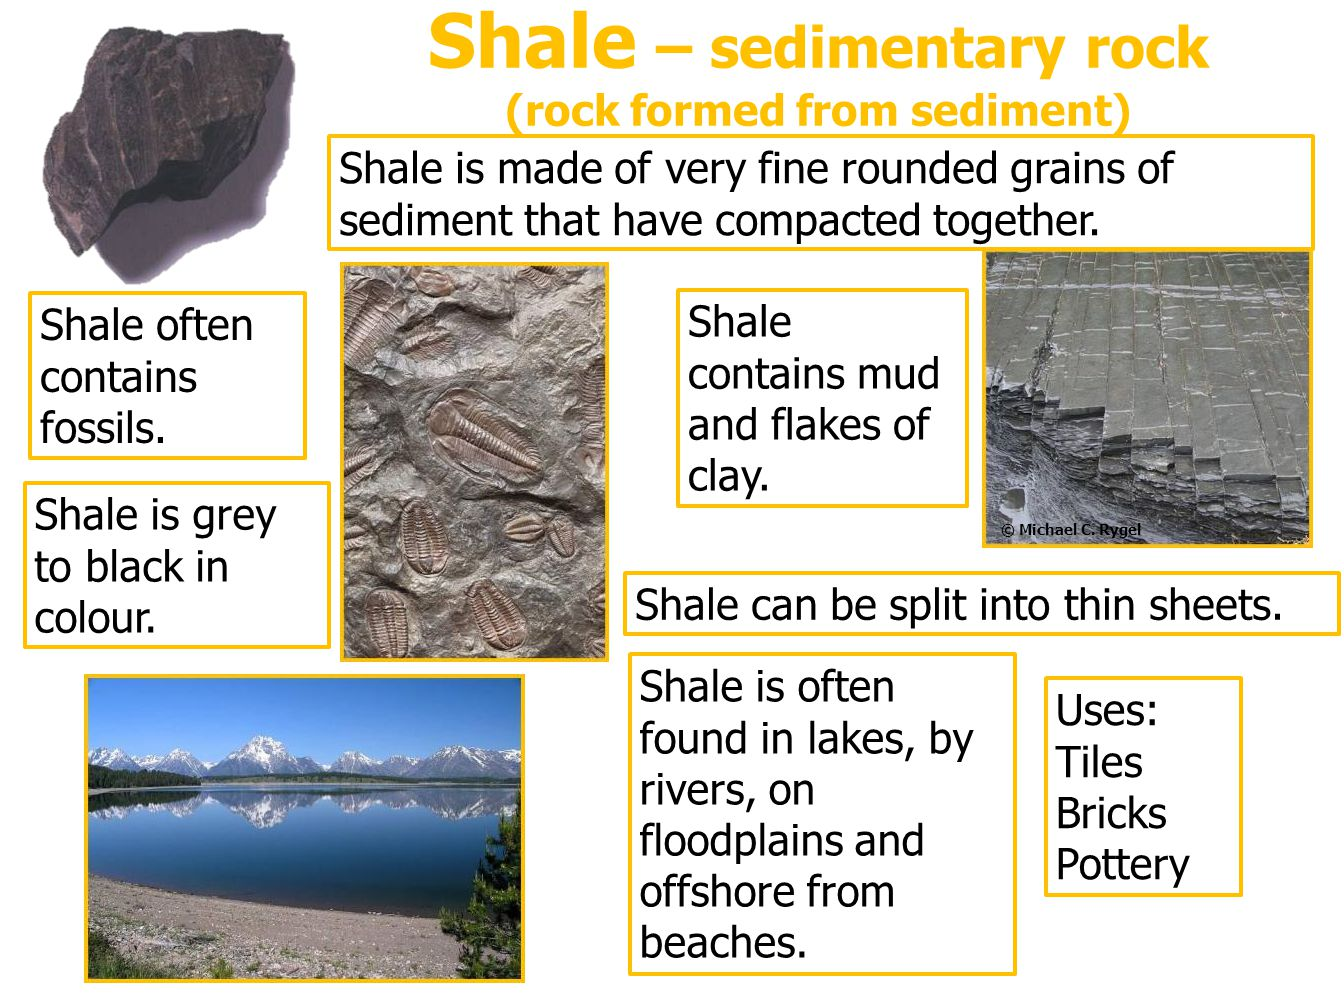 Shale – sedimentary rock (rock formed from sediment)